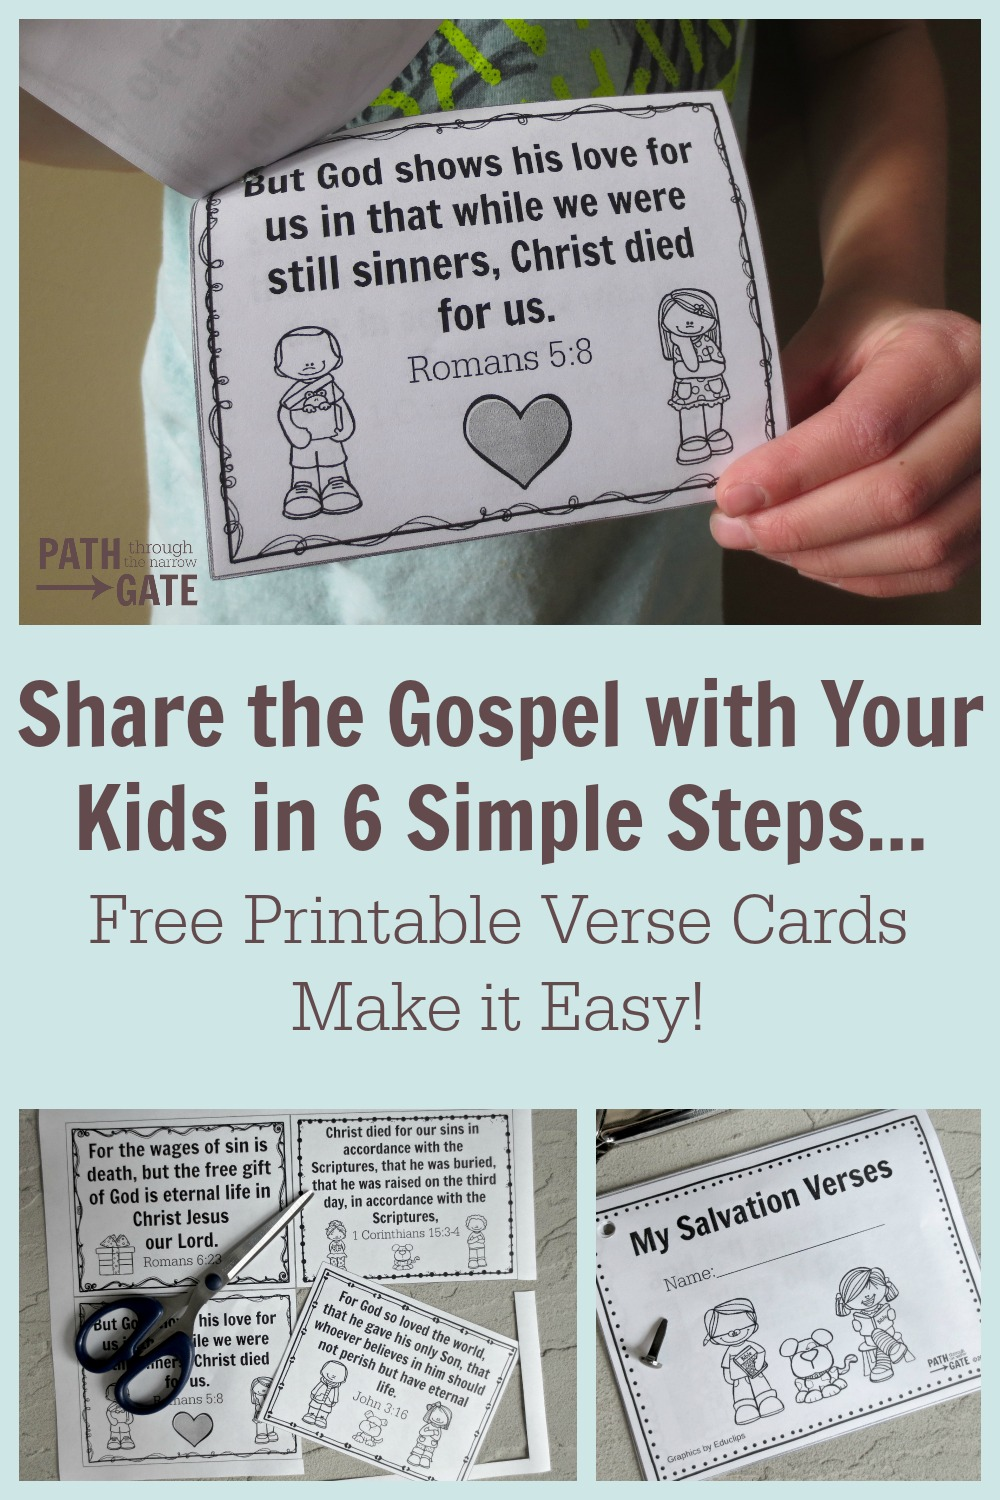 These free printable verse cards are a perfect way to share the Gospel with your kids, or to hand out to kids visiting your Sunday School or Awana.|How to Share the Gospel with Kids in 6 Simple Steps|Path Through the Narrow Gate.com